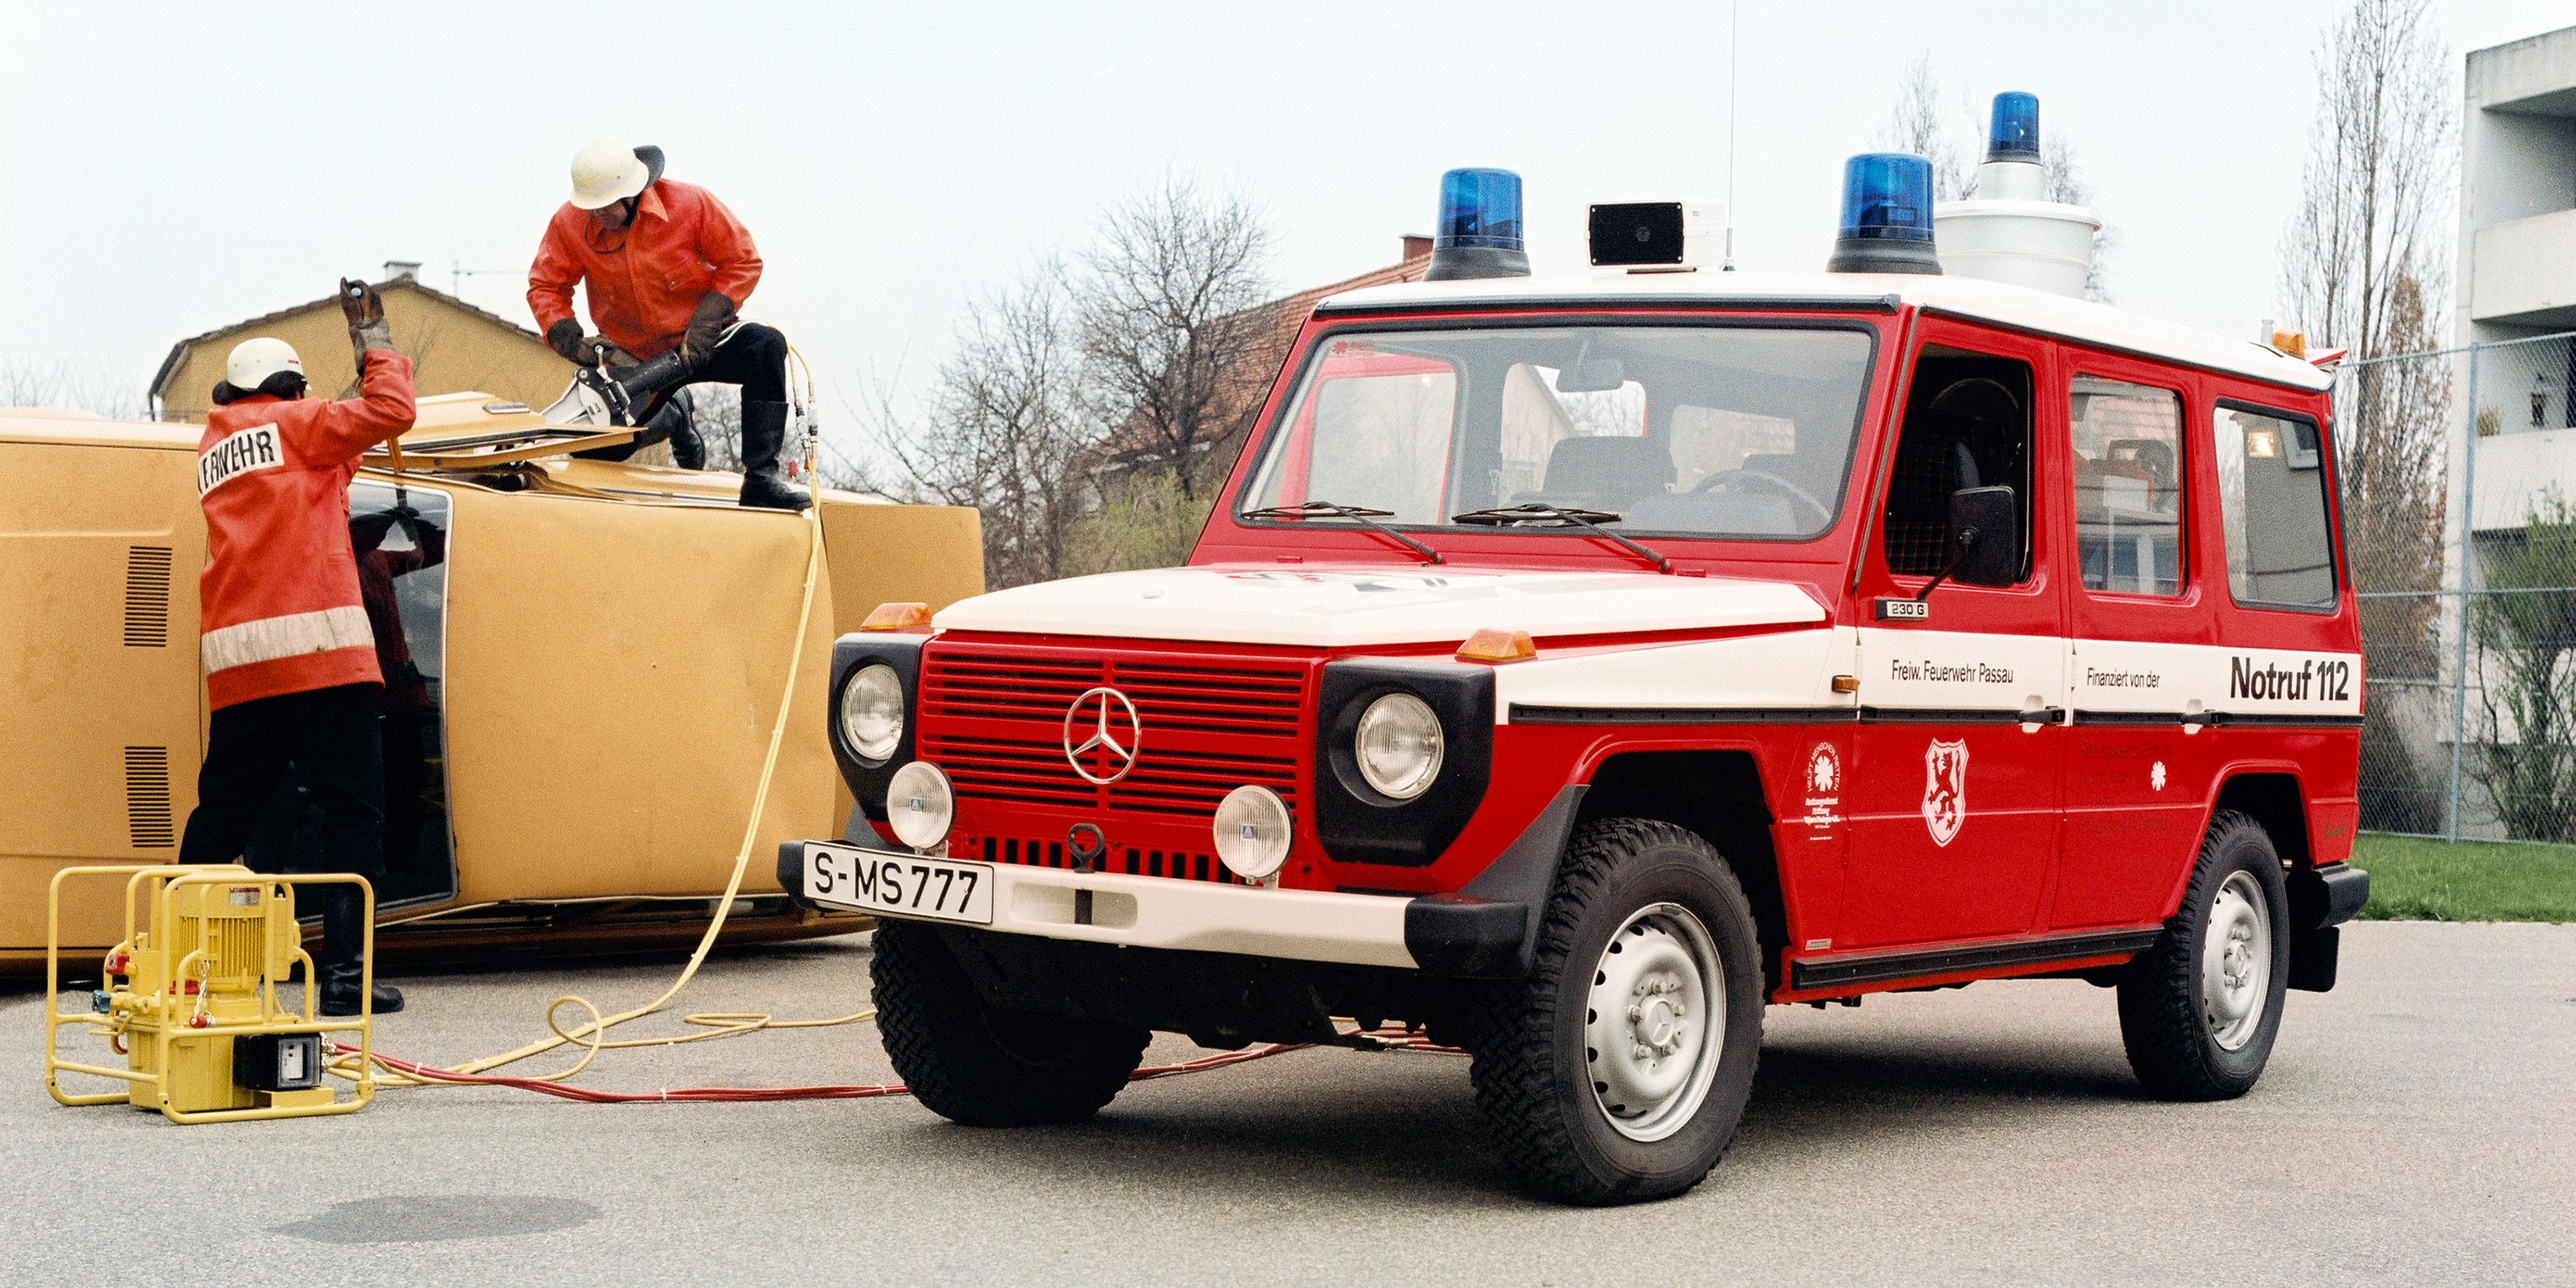 Celebrating the G-Wagen's 40th Birthday